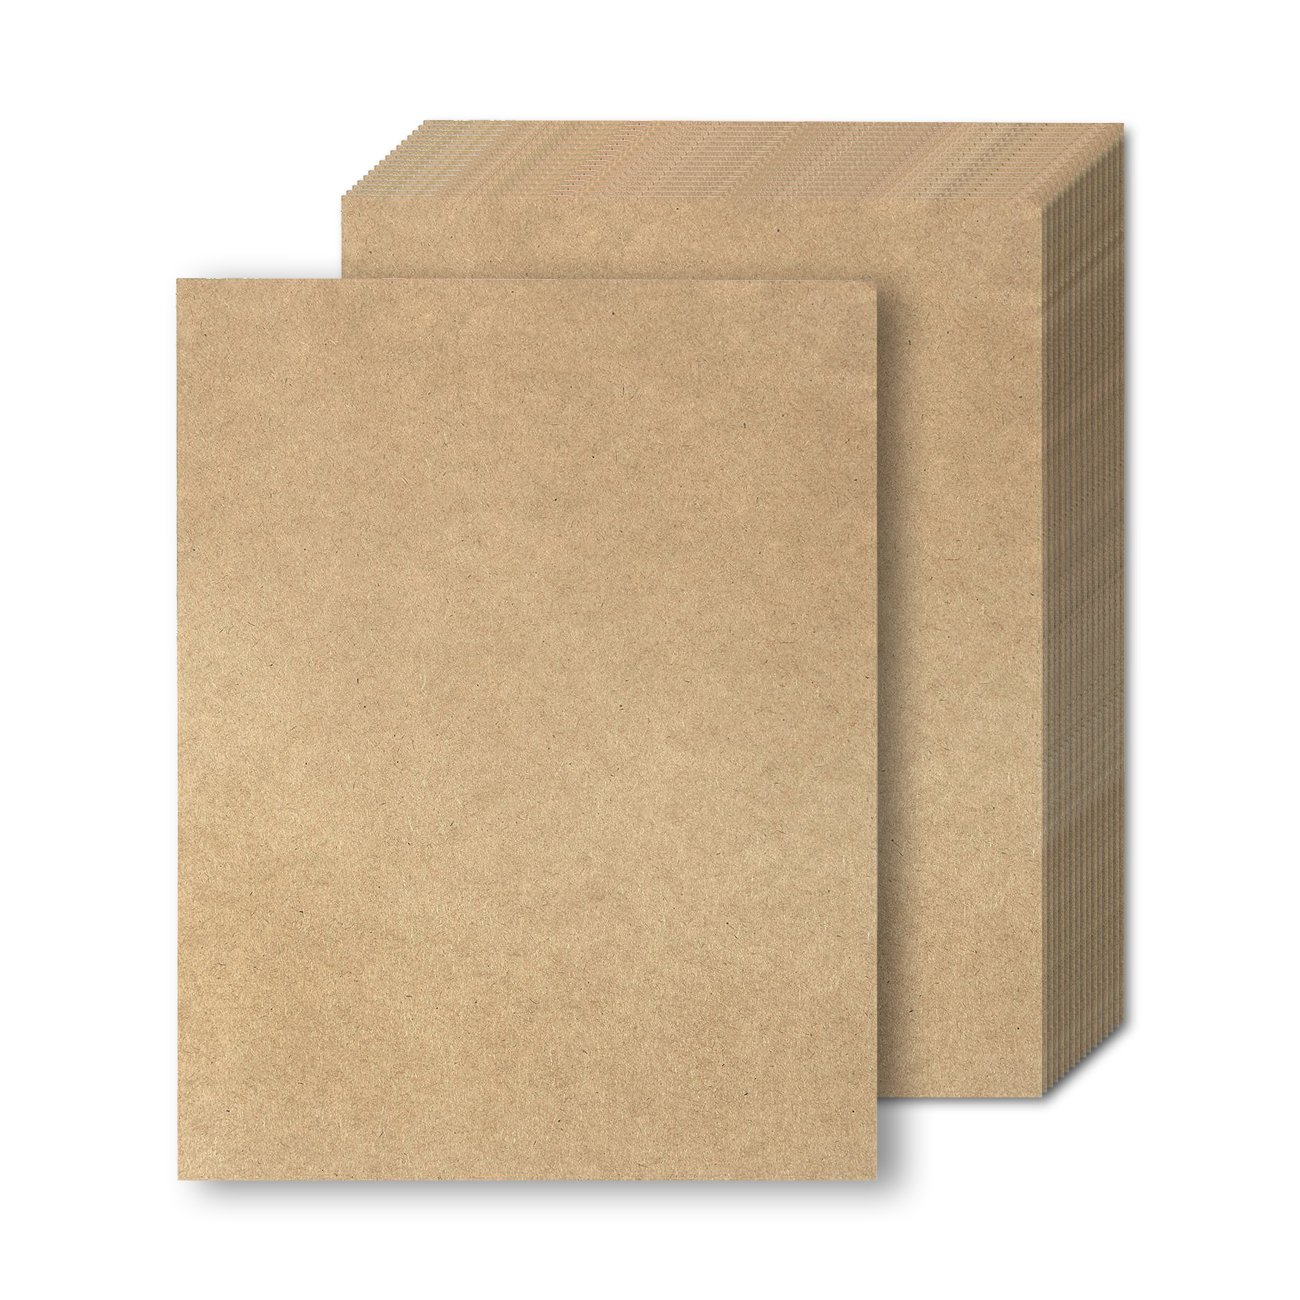 48 Pack Kraft Paper - Natural Kraft Paper - Letter Size - 120 GSM - 8.5 x 11 Inches